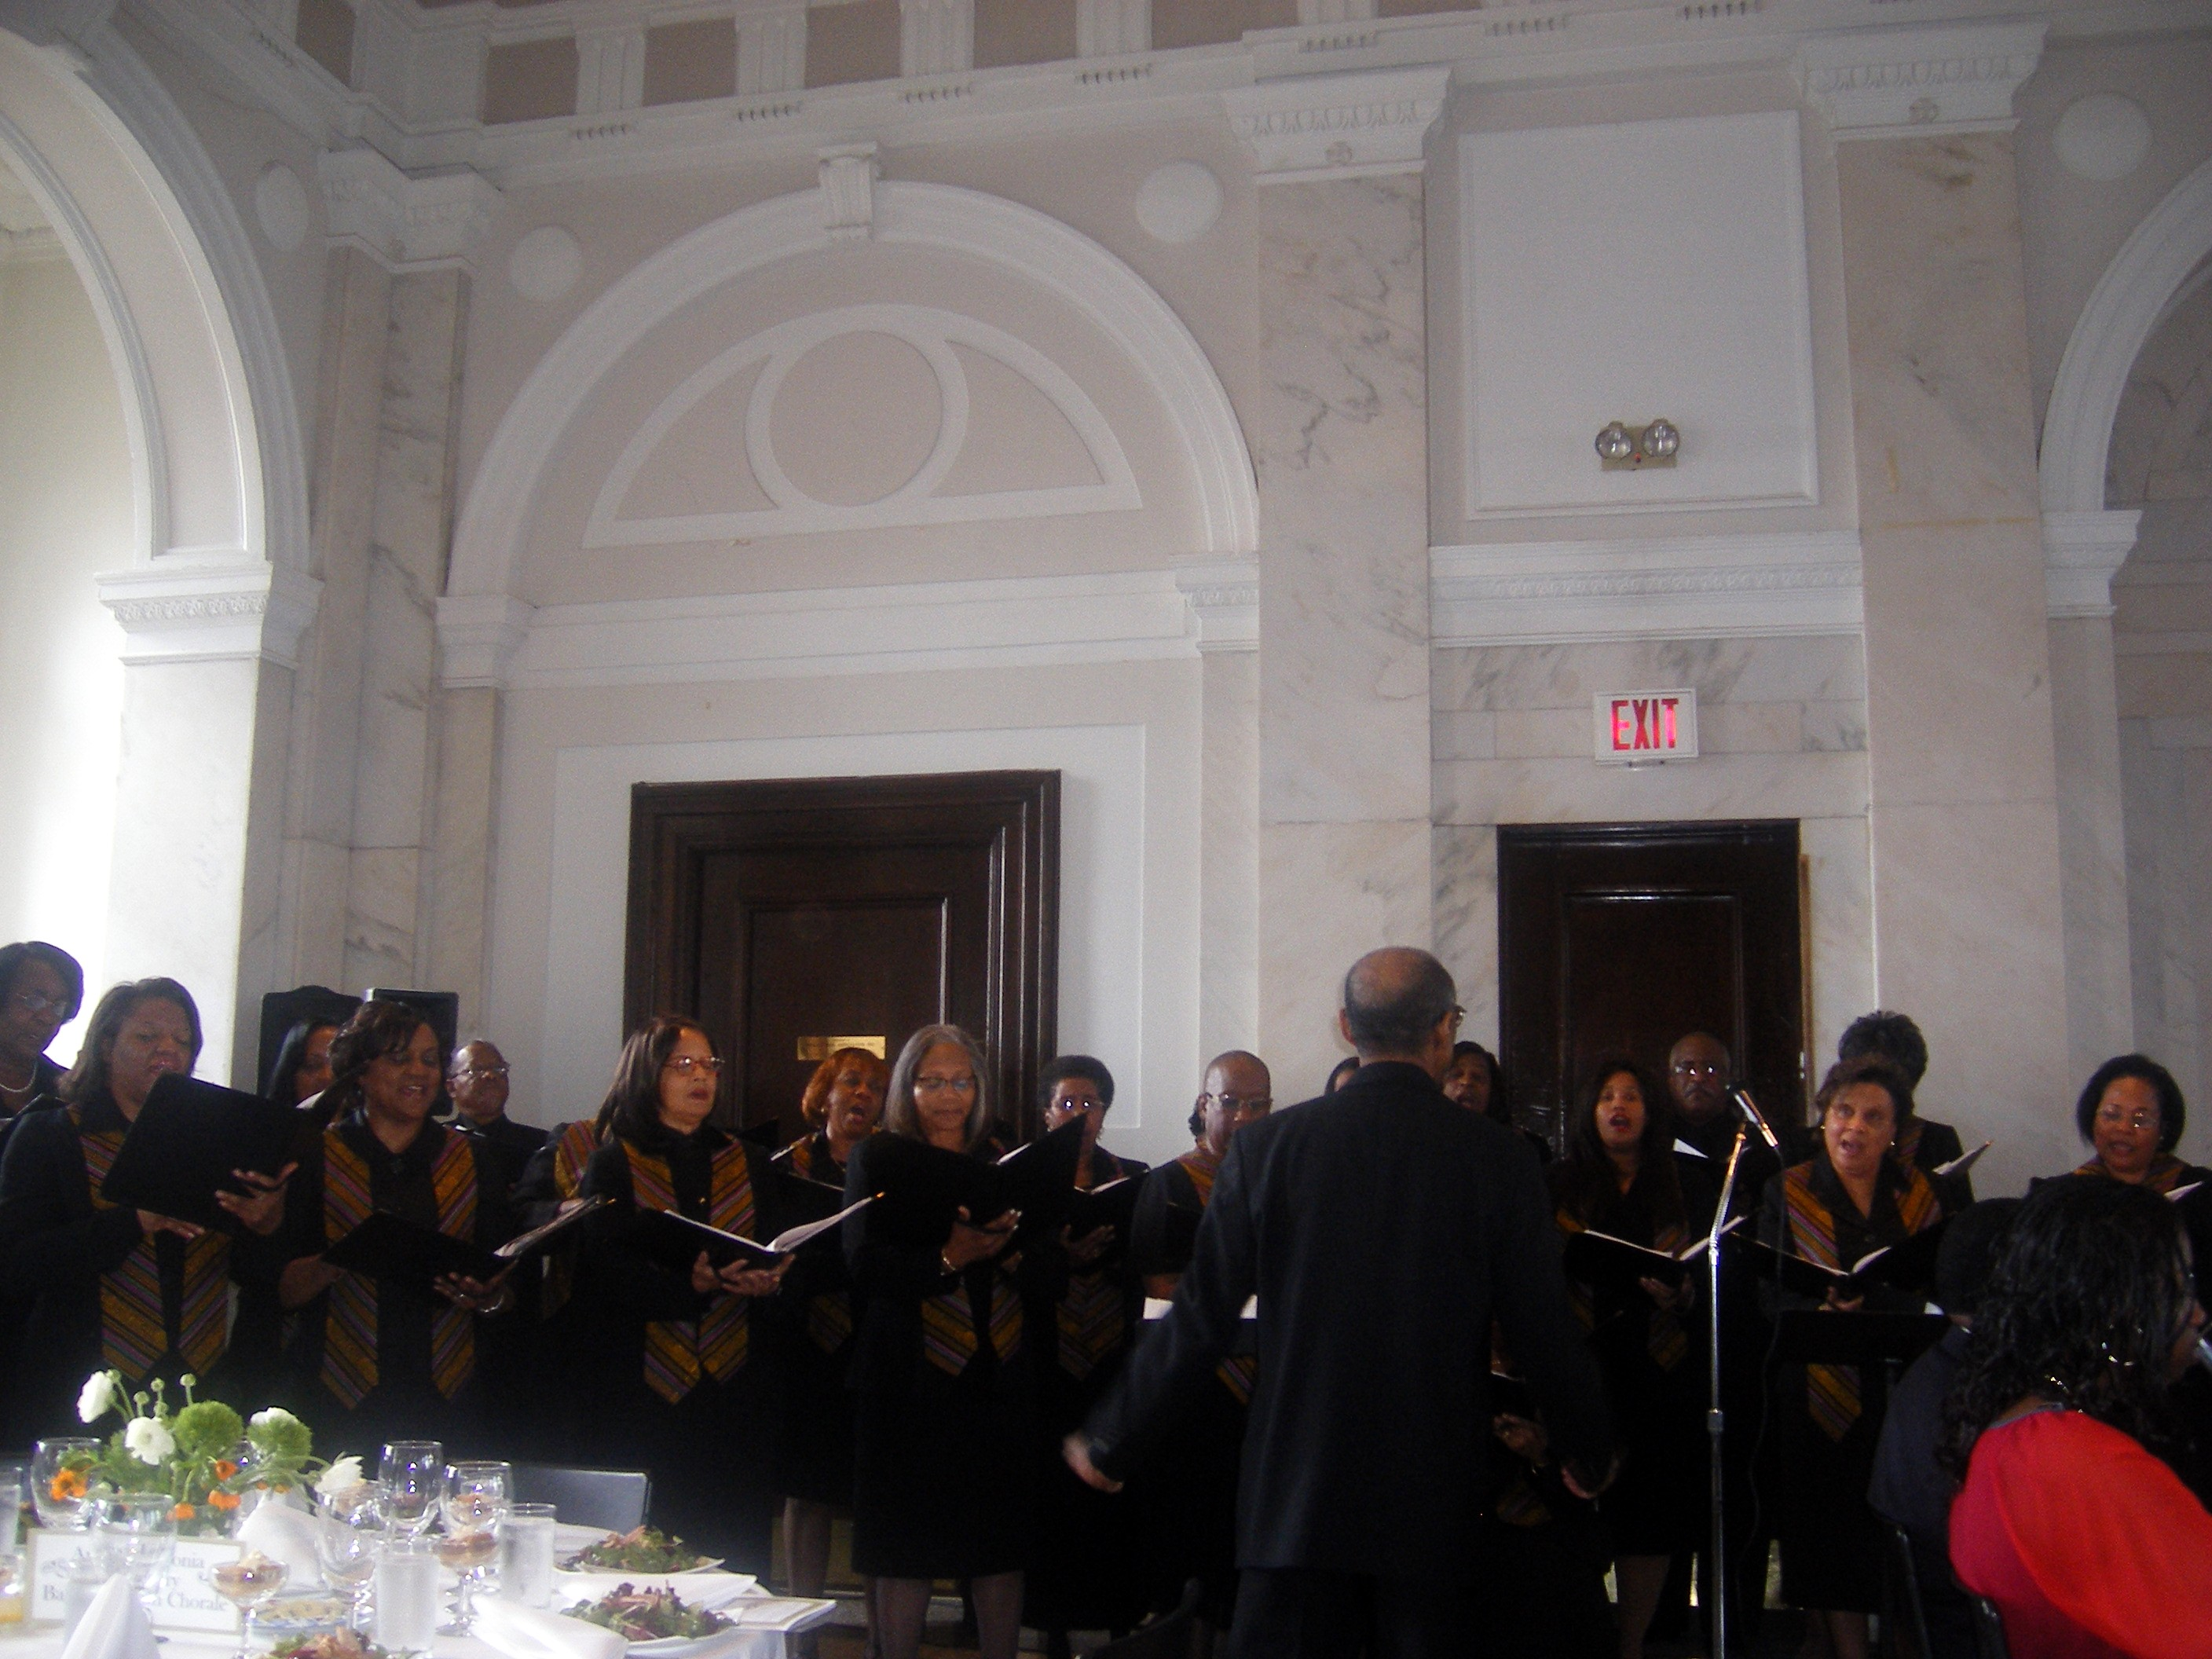 The James C. Ward Classical Arts Chorale Performs at the Celebration